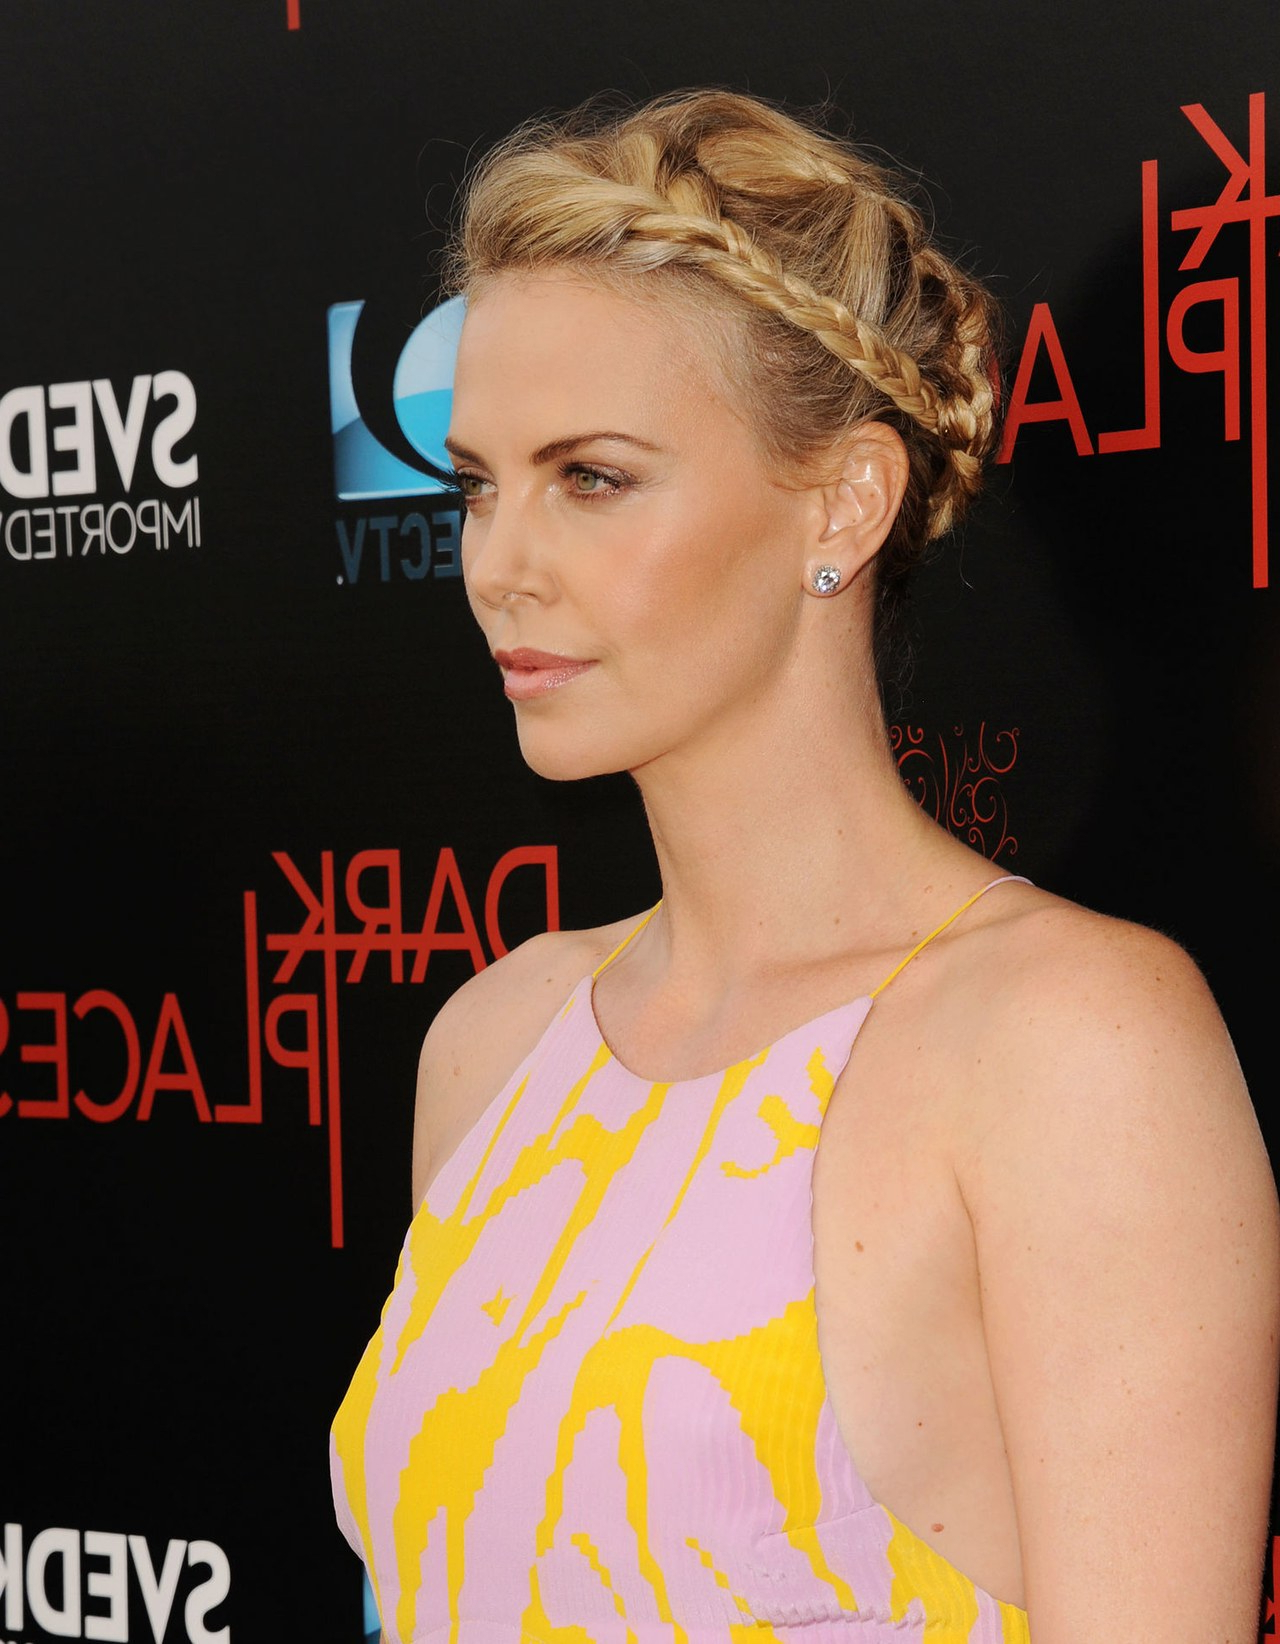 Charlize Theron Just Chopped Her Hair Super Short   Glamour Regarding Charlize Theron Short Haircuts (View 14 of 25)